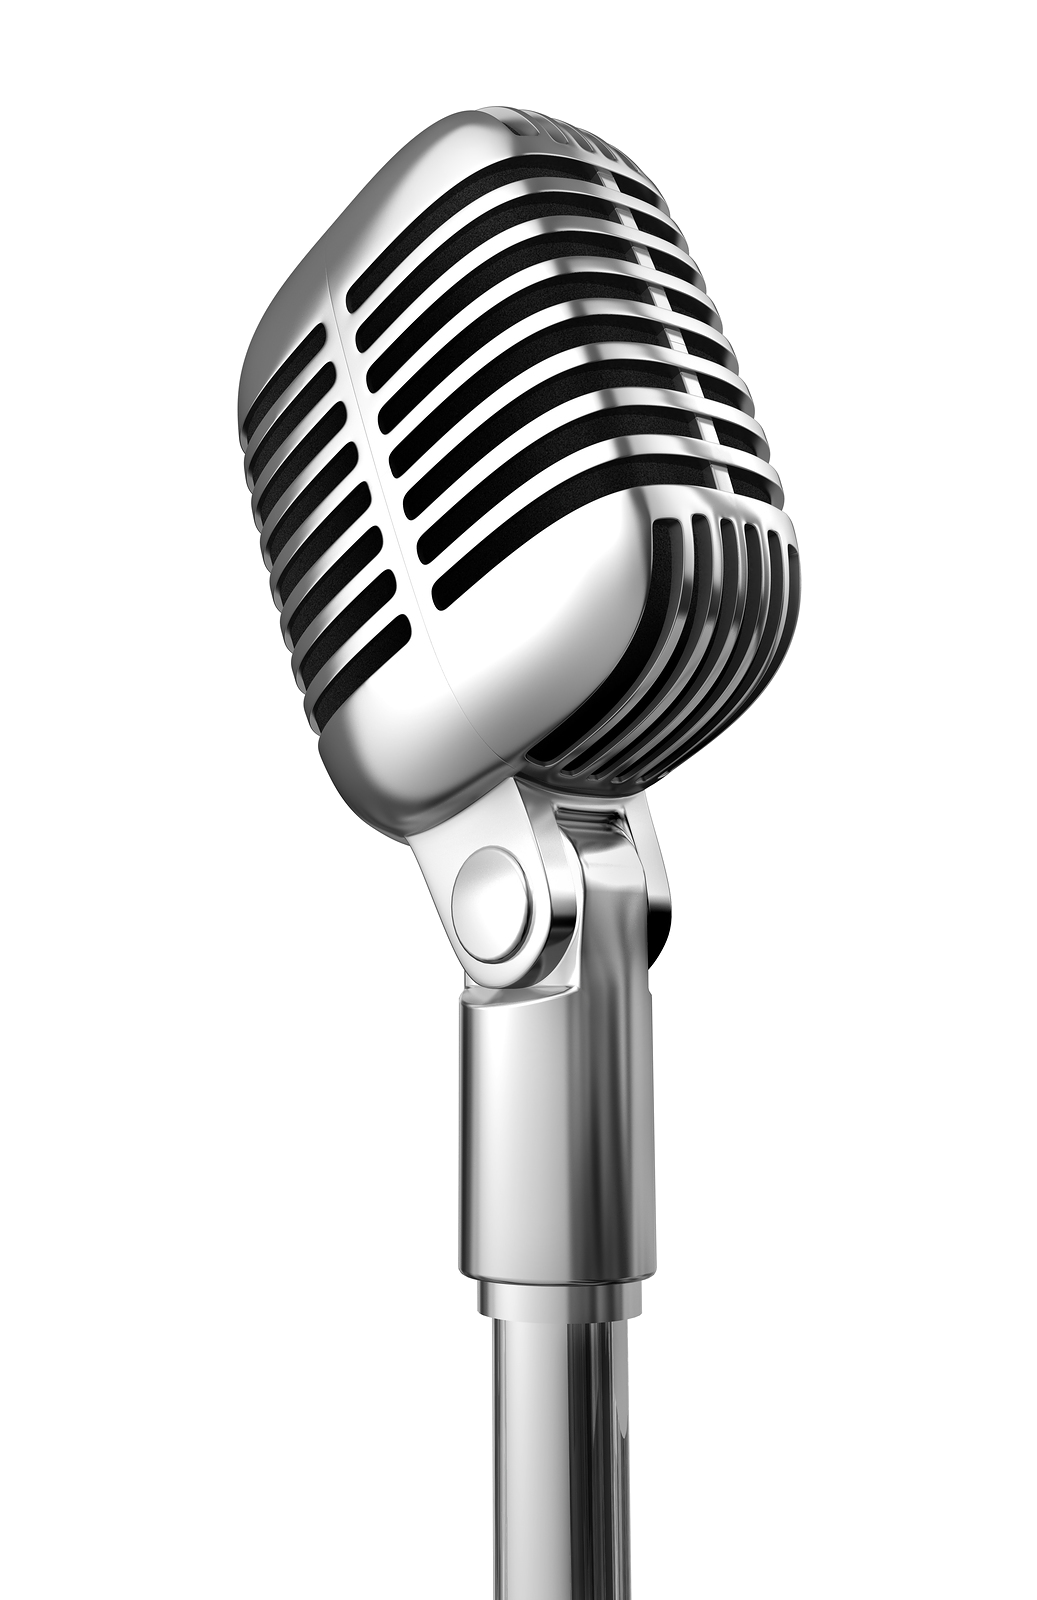 Microphone png image. Transparent images all